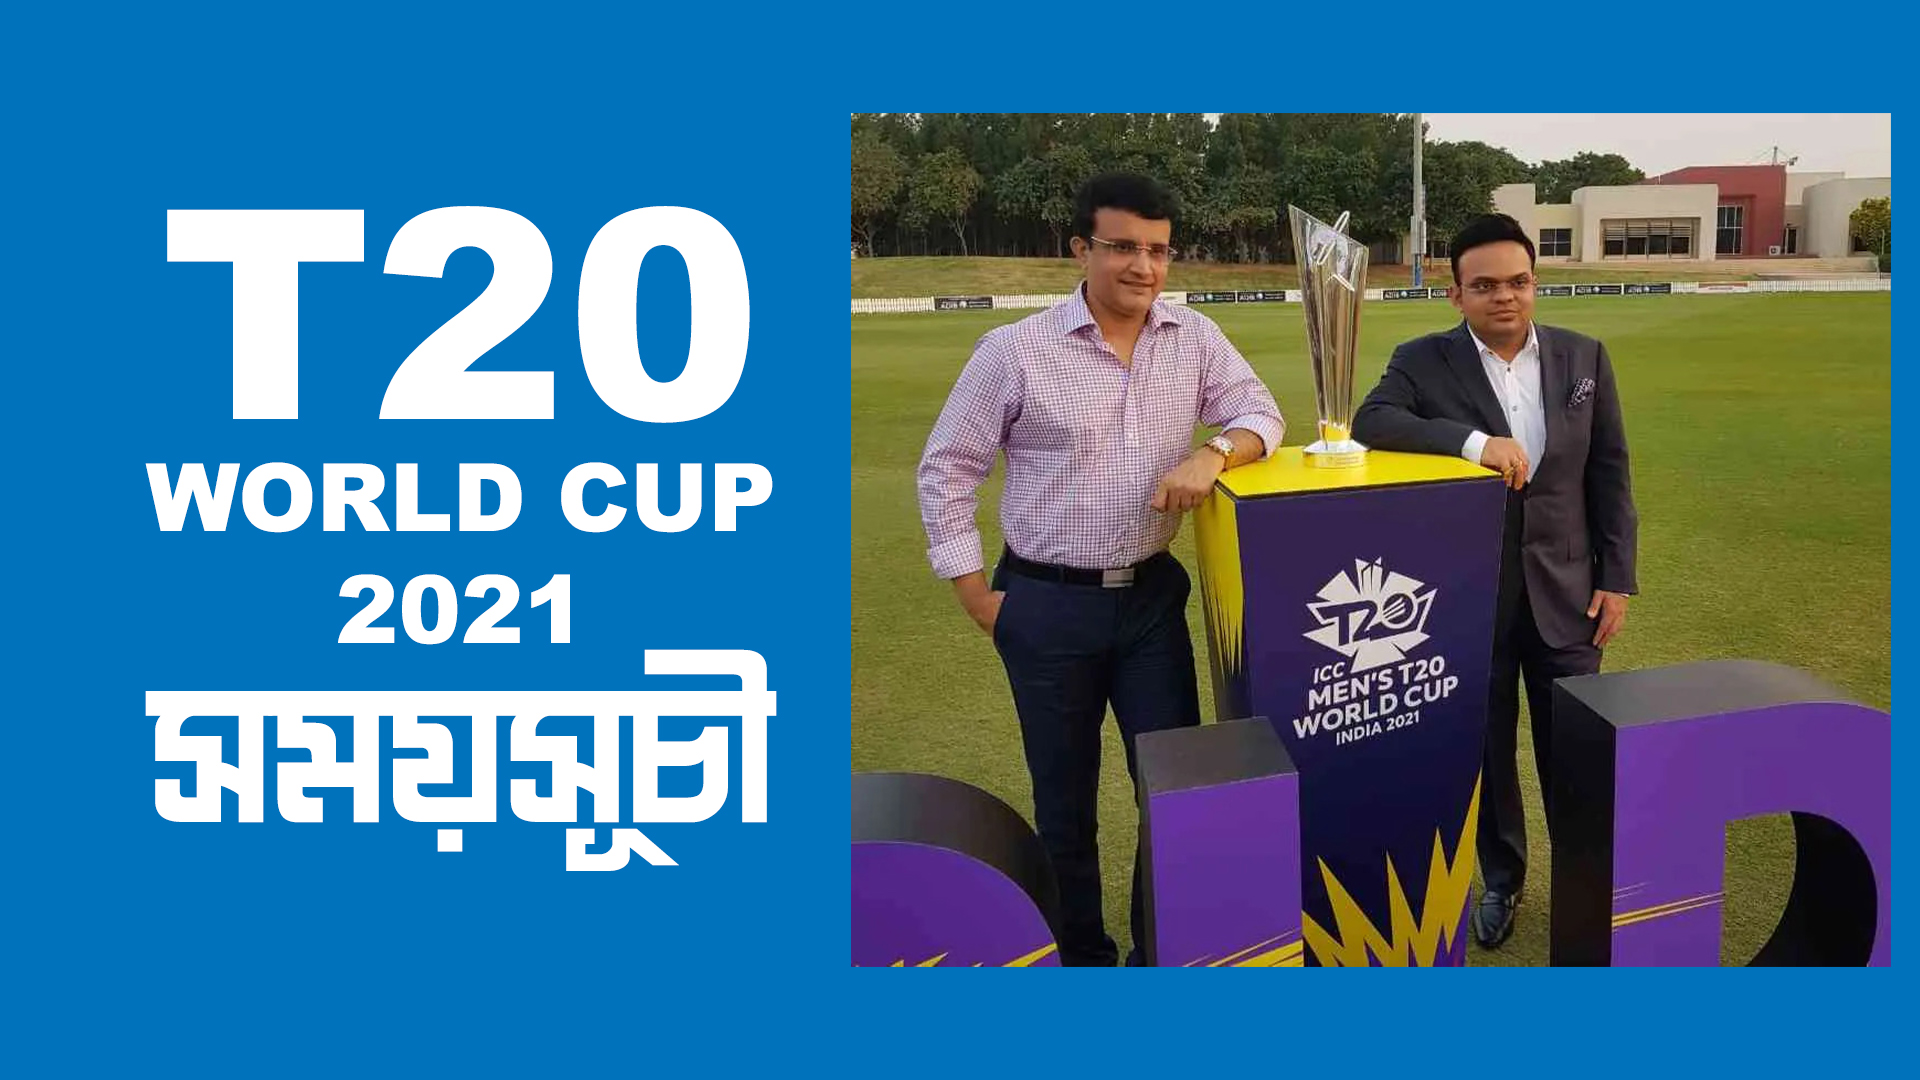 T20 world cup 2021 time schedule